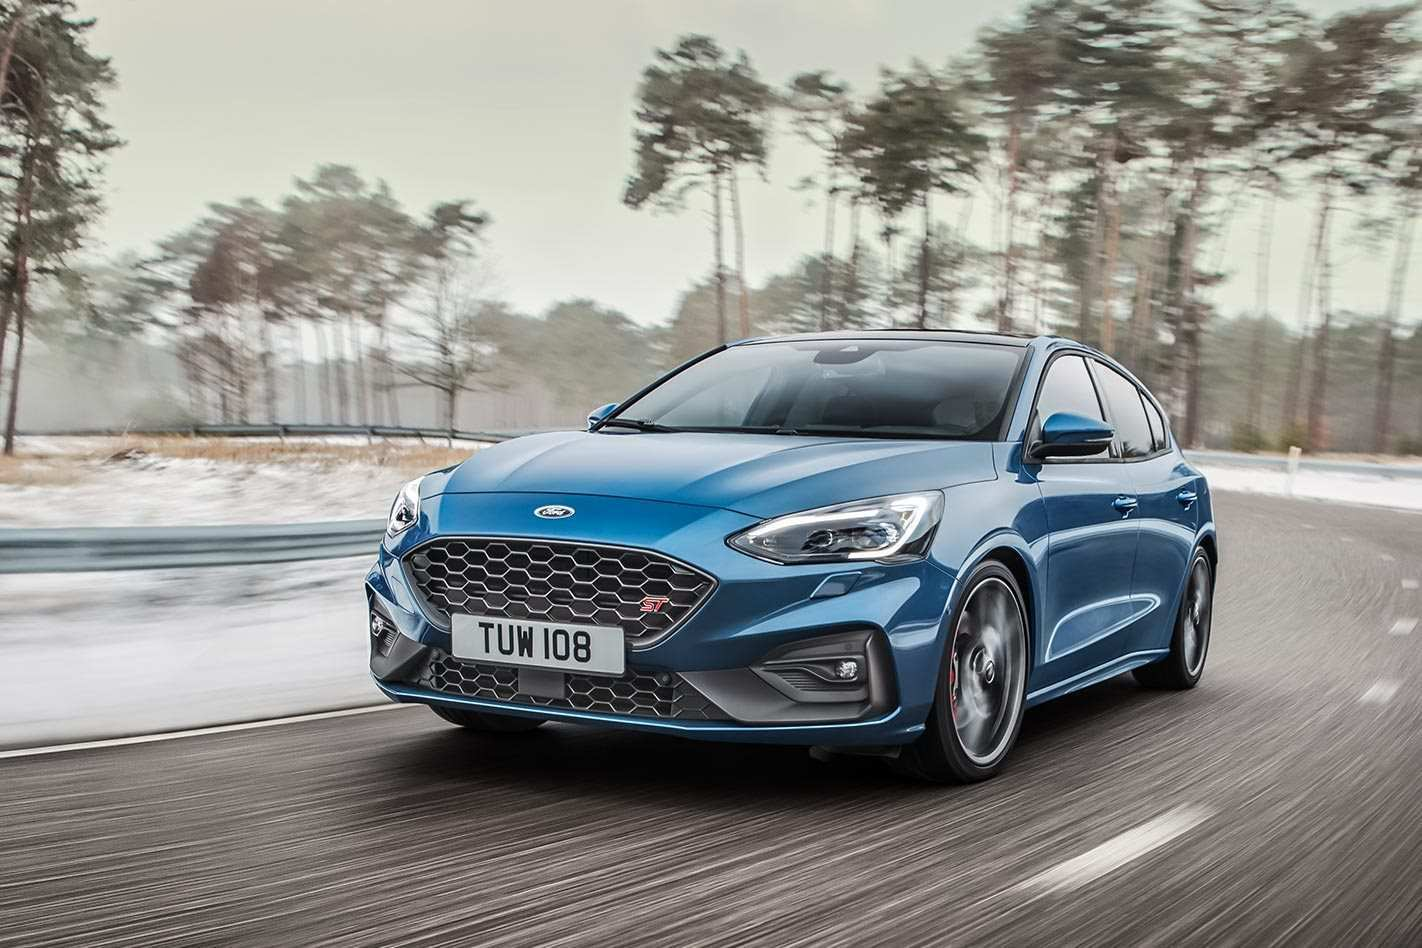 36 New 2020 Ford Fiesta St Rs Concept